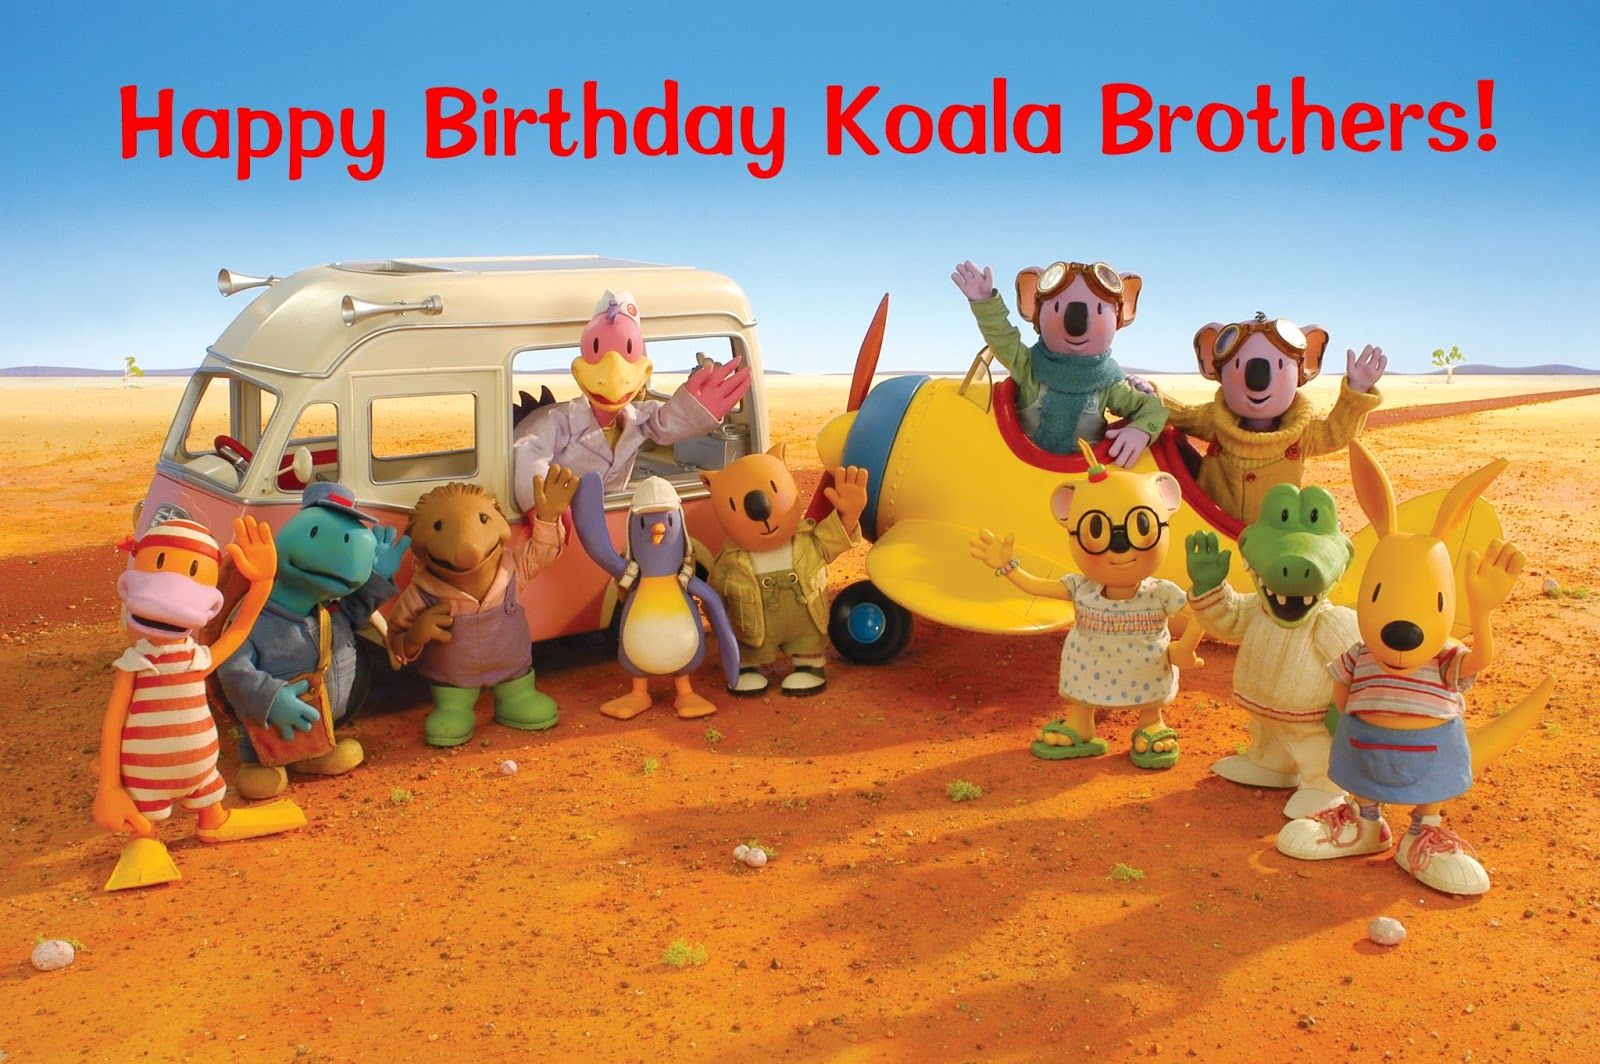 Happy 10th Birthday to the Koala Brothers